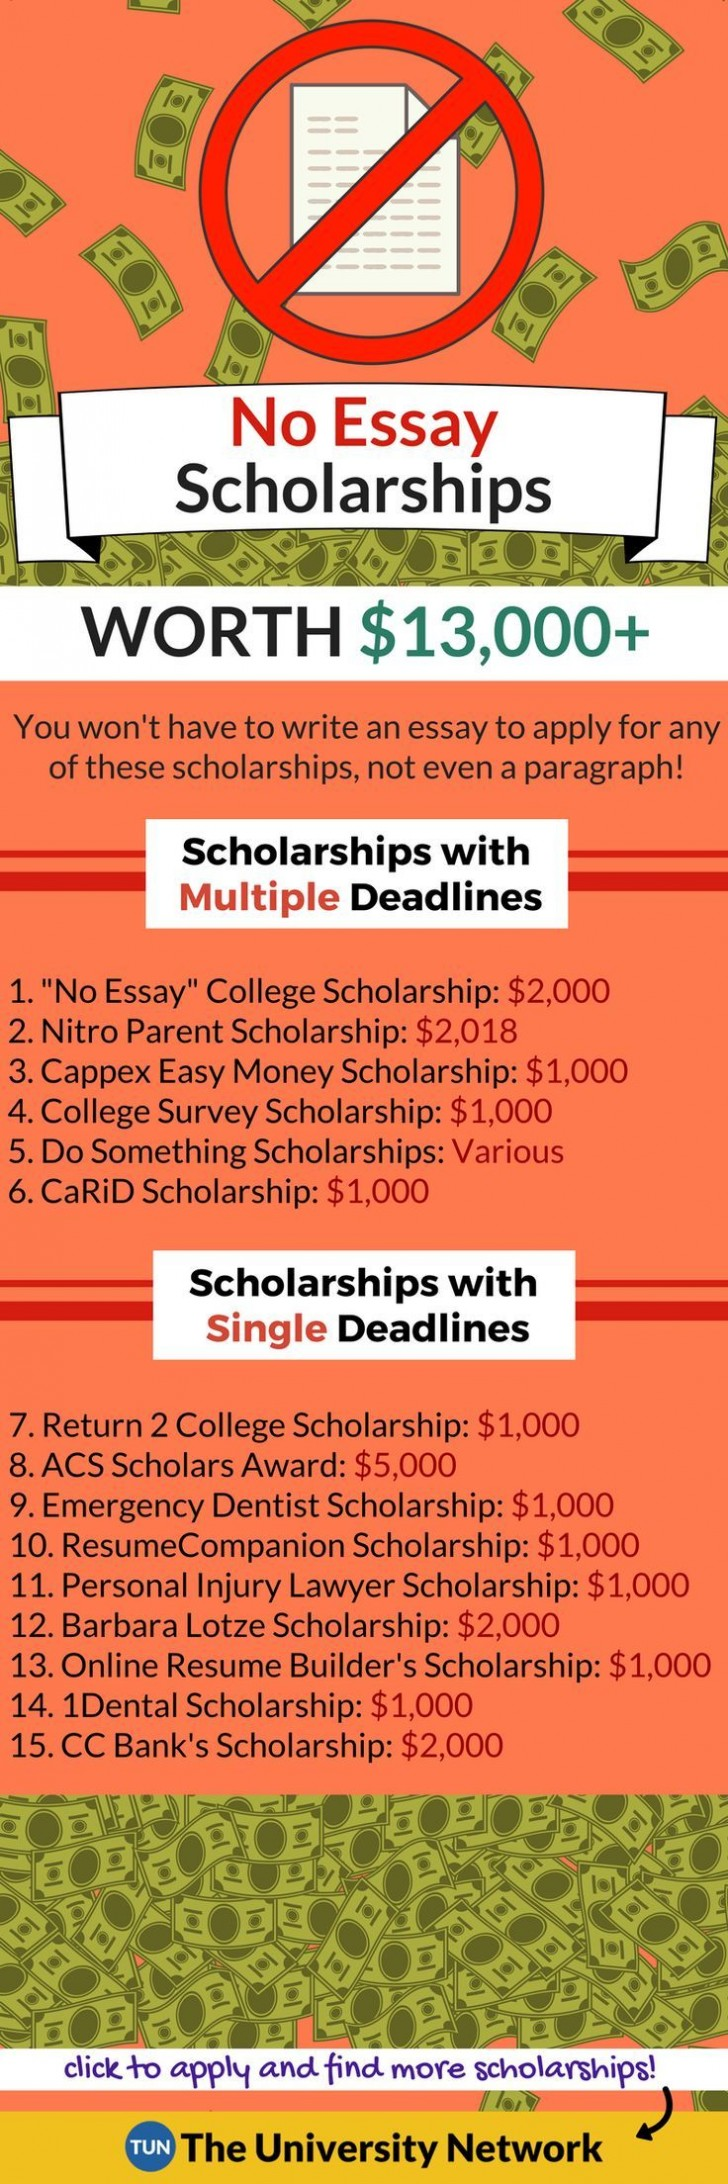 013 Essay Example No Exceptional Scholarships For Undergraduates High School Seniors College Students 2019 728